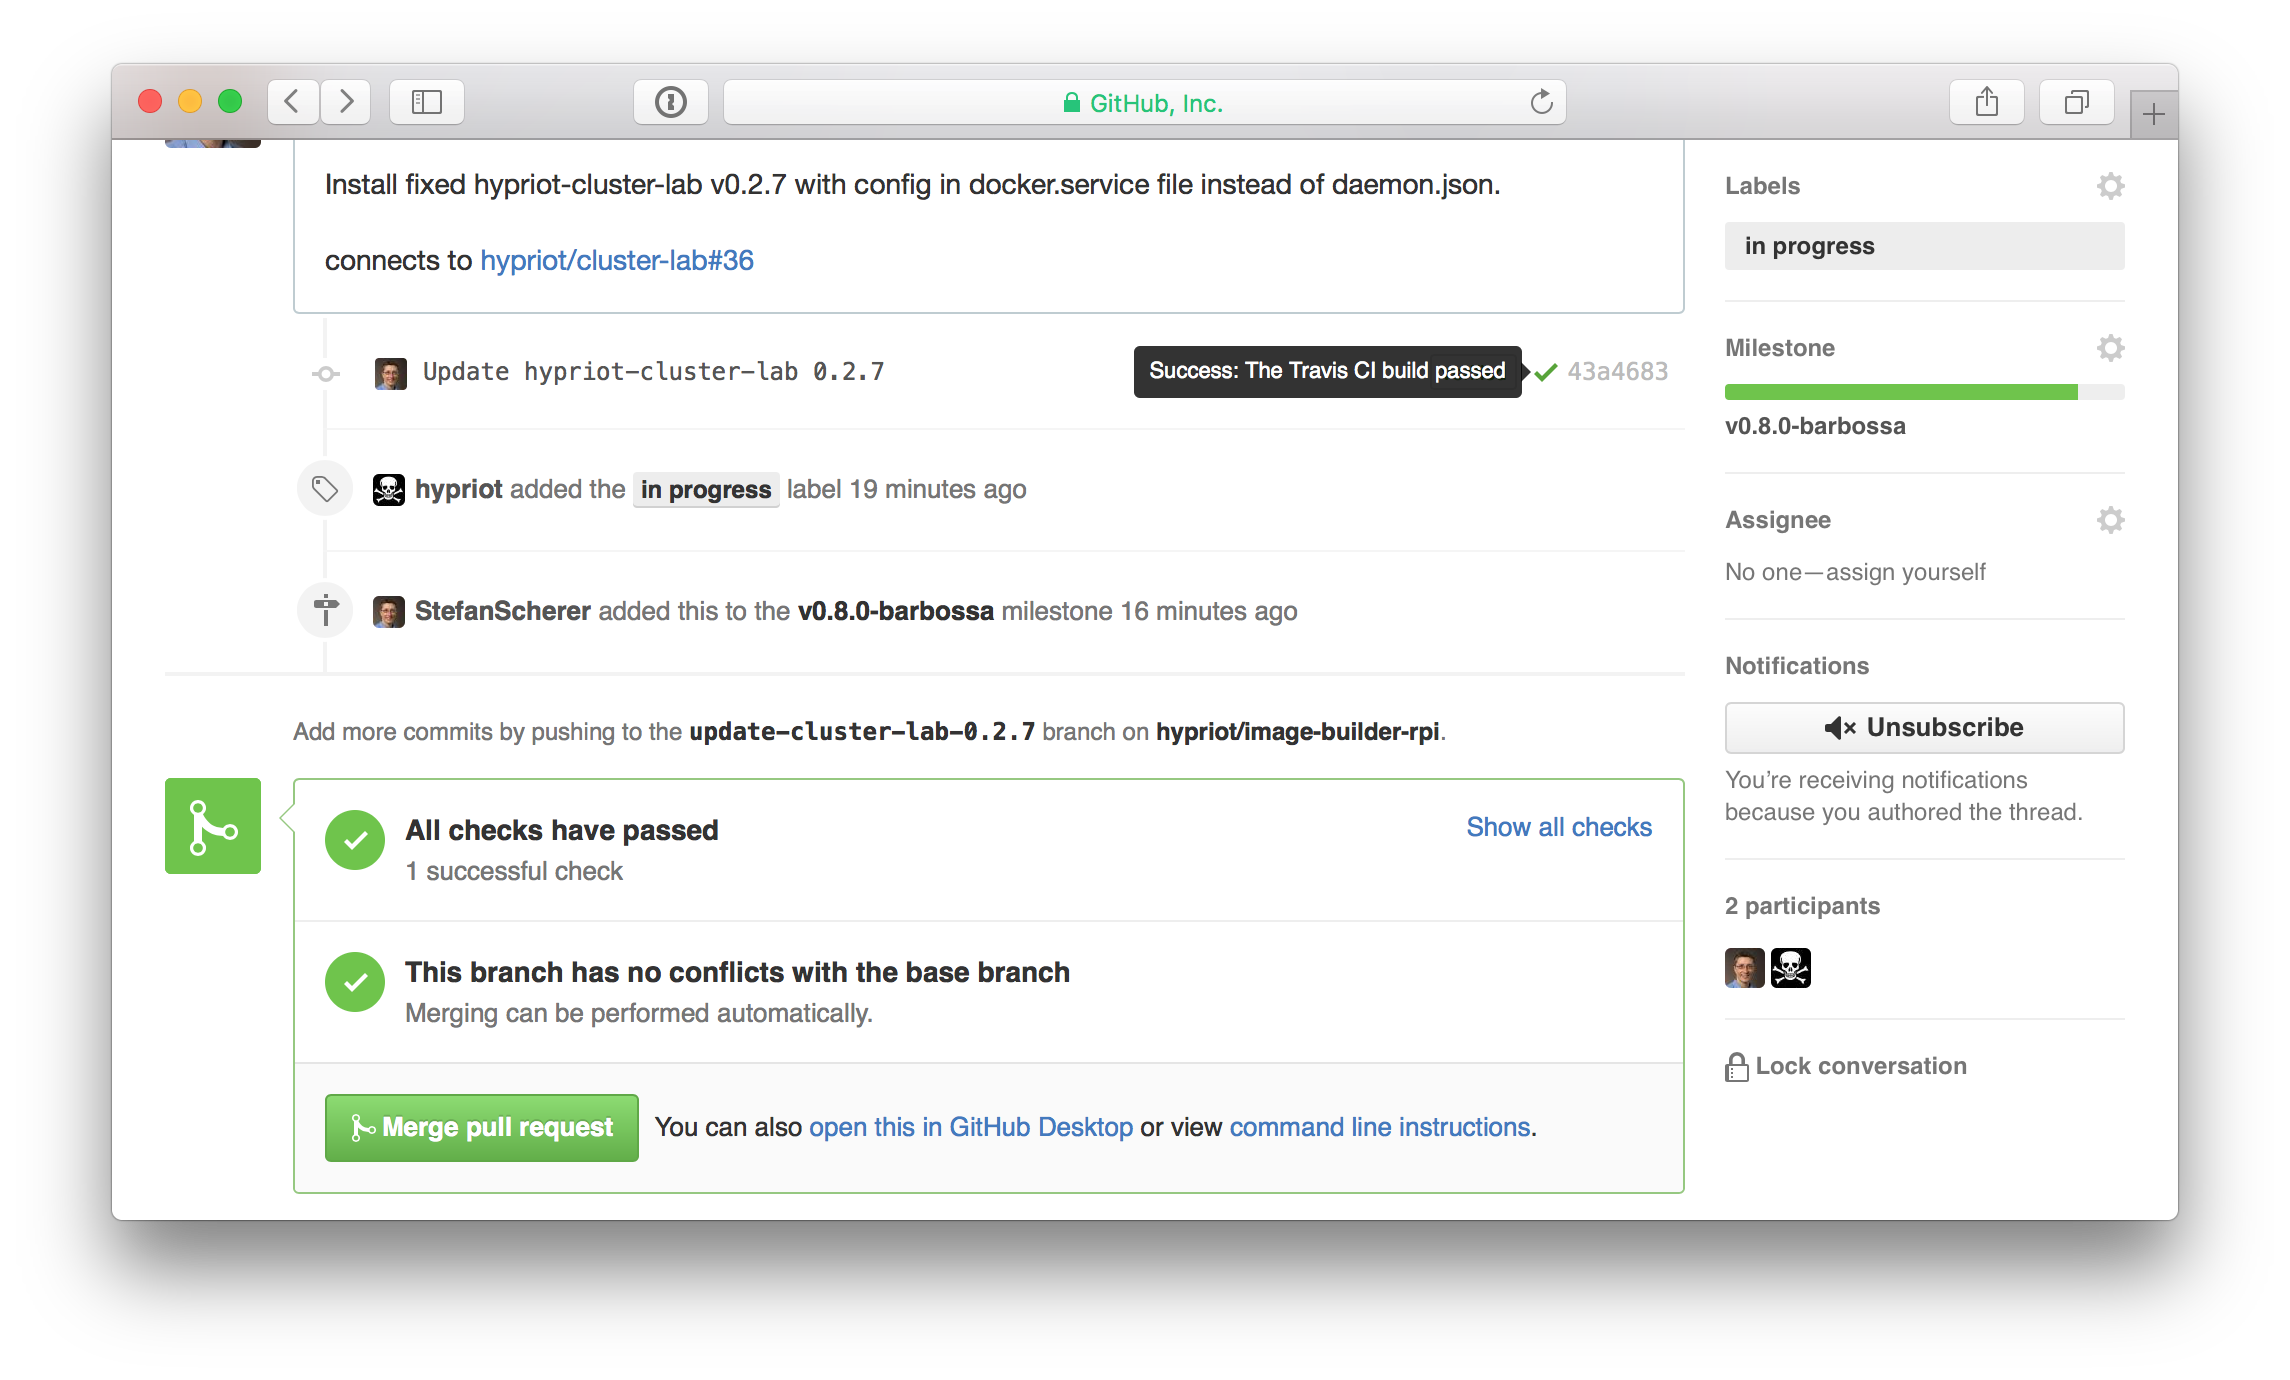 pull request successful